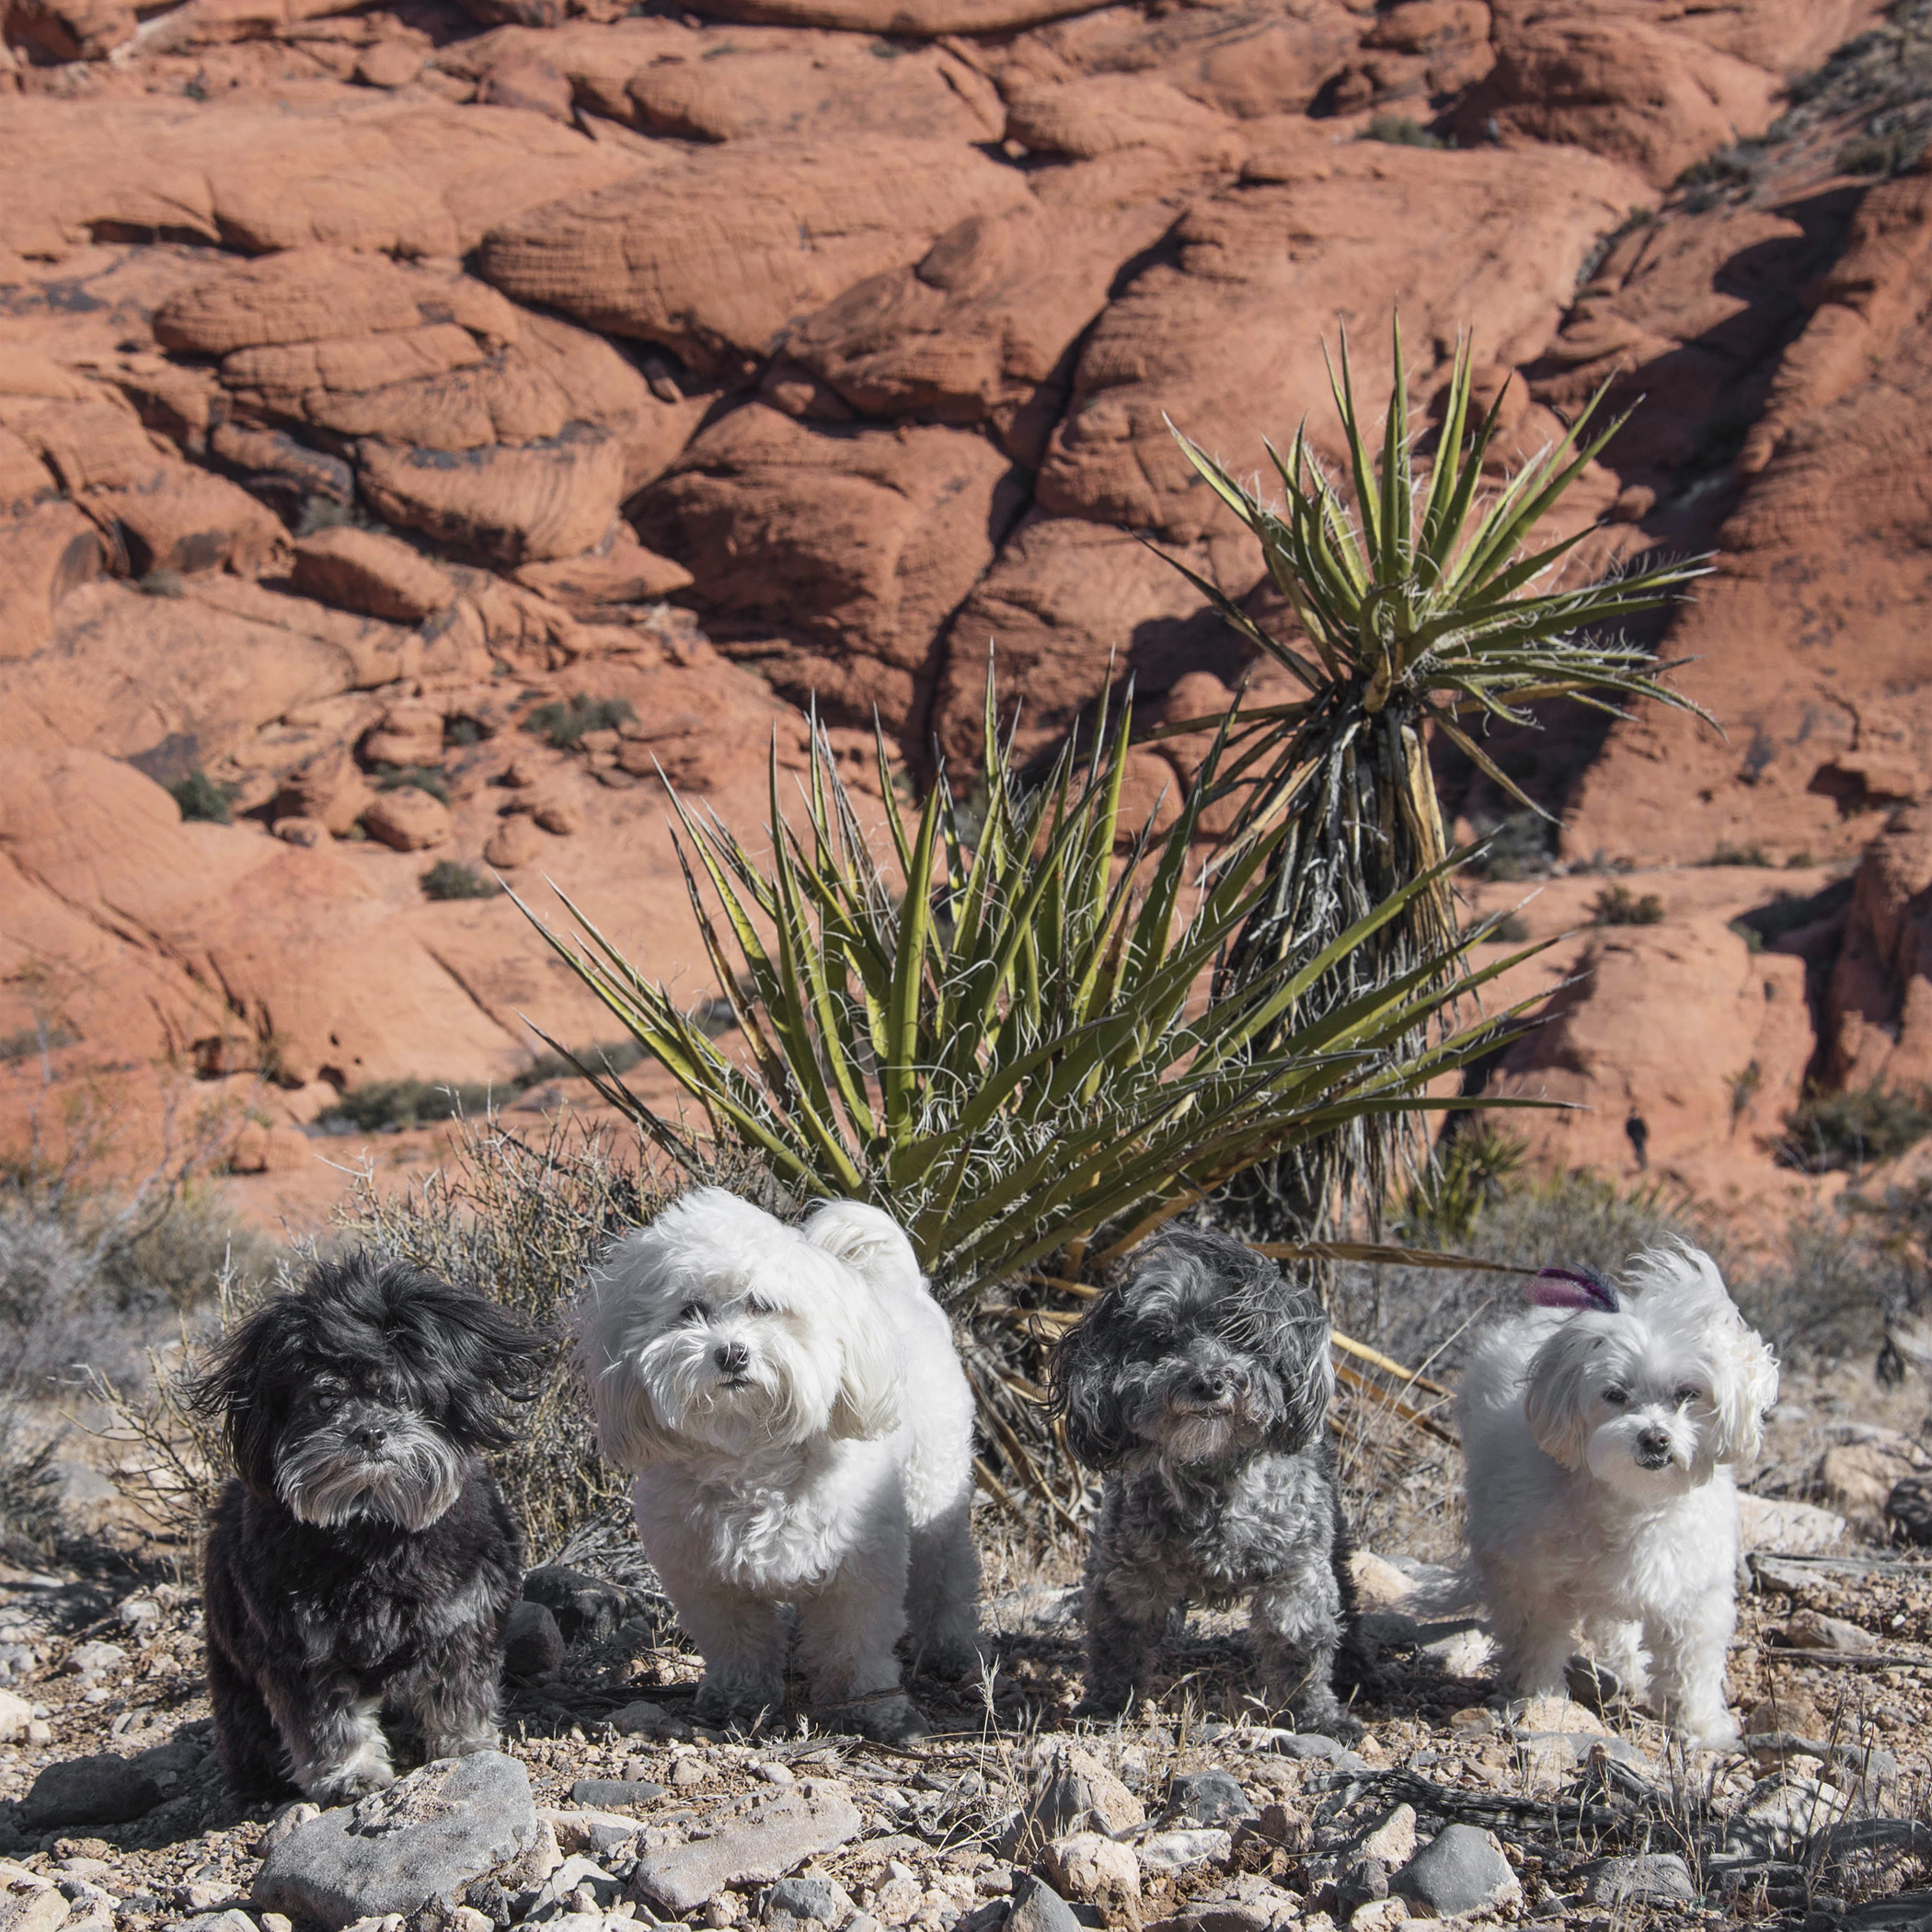 Could you have picked a windier spot, Mom? Again, so professional! If we're not careful we're going to blow off the side of this mountain at Red Rock Canyon!